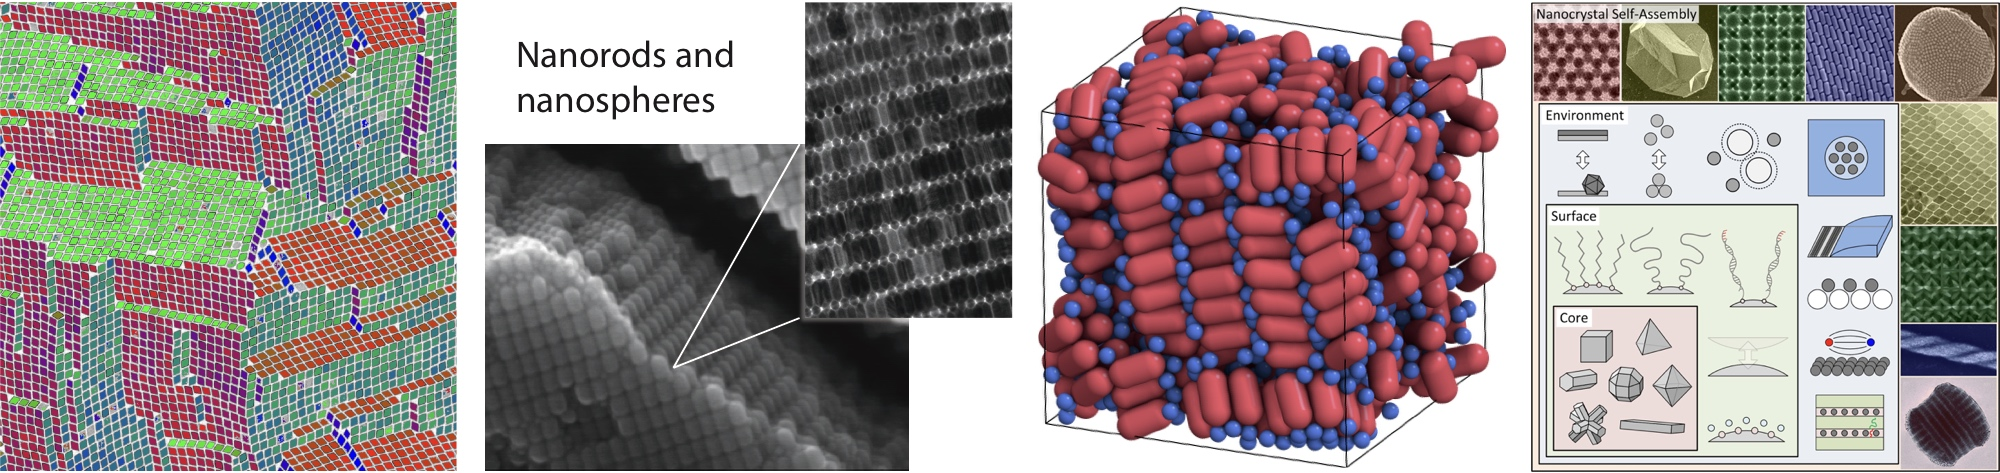 NanoparticleSelfassembly